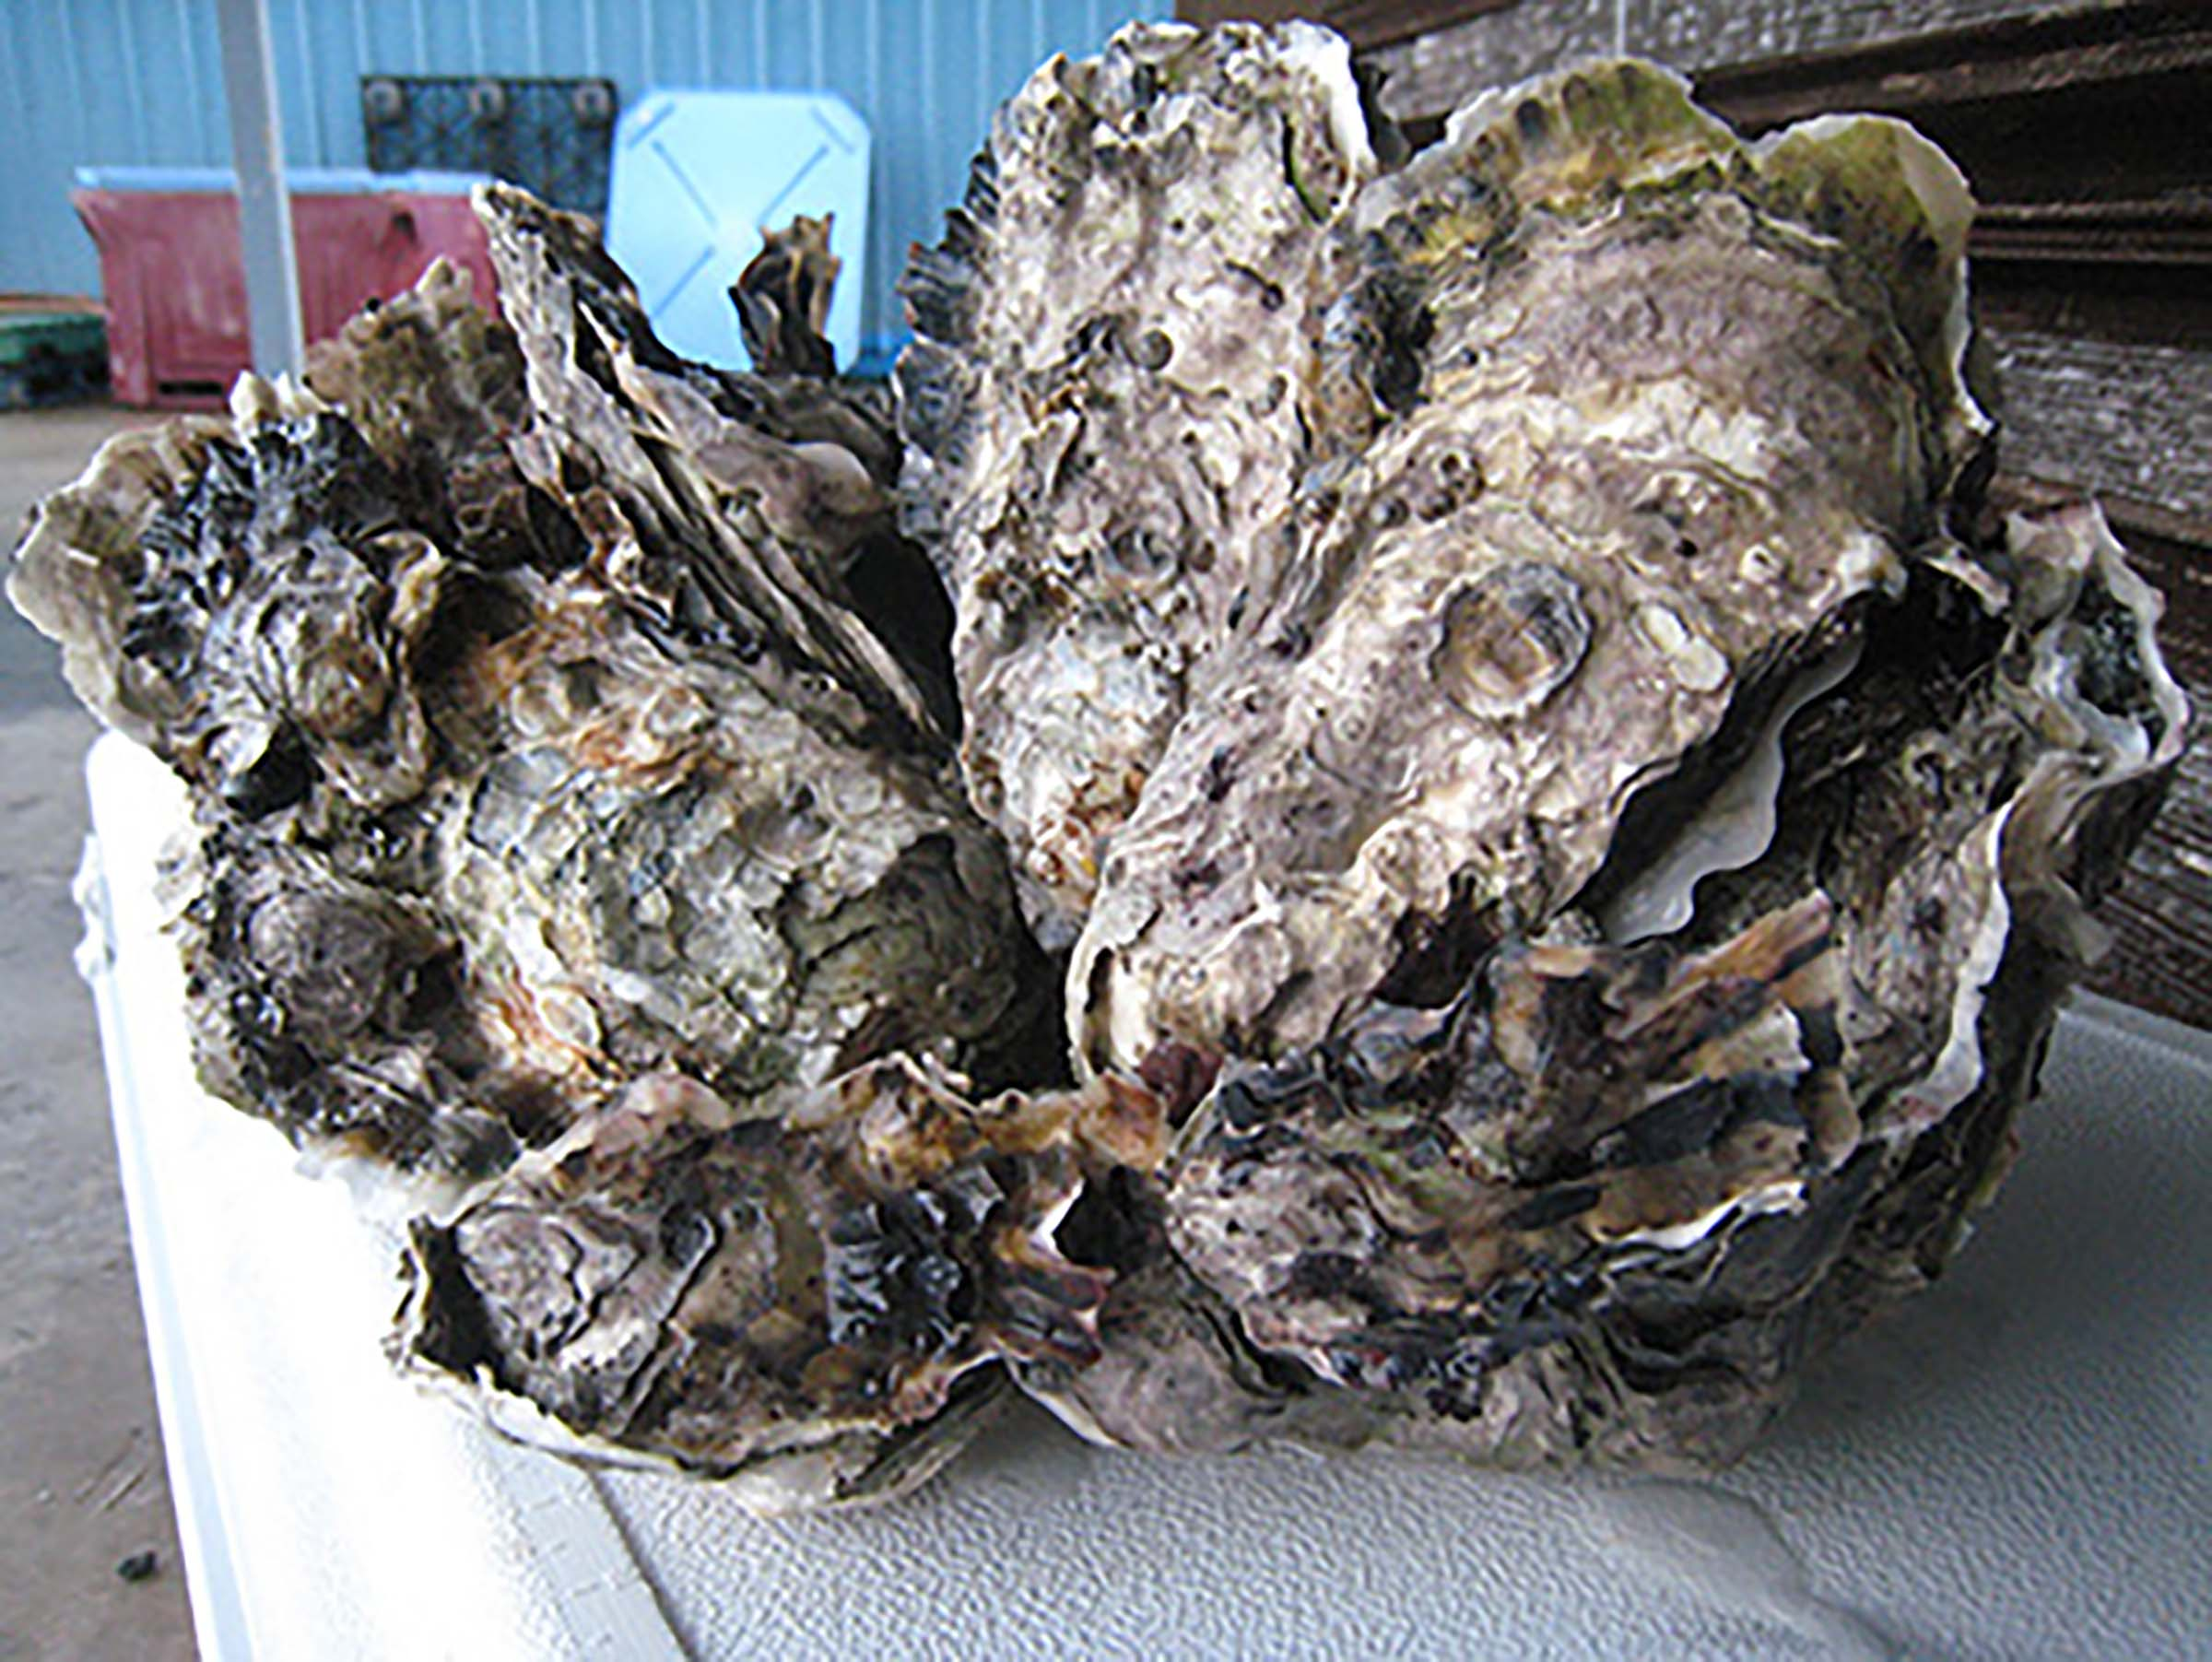 A giant oyster shell